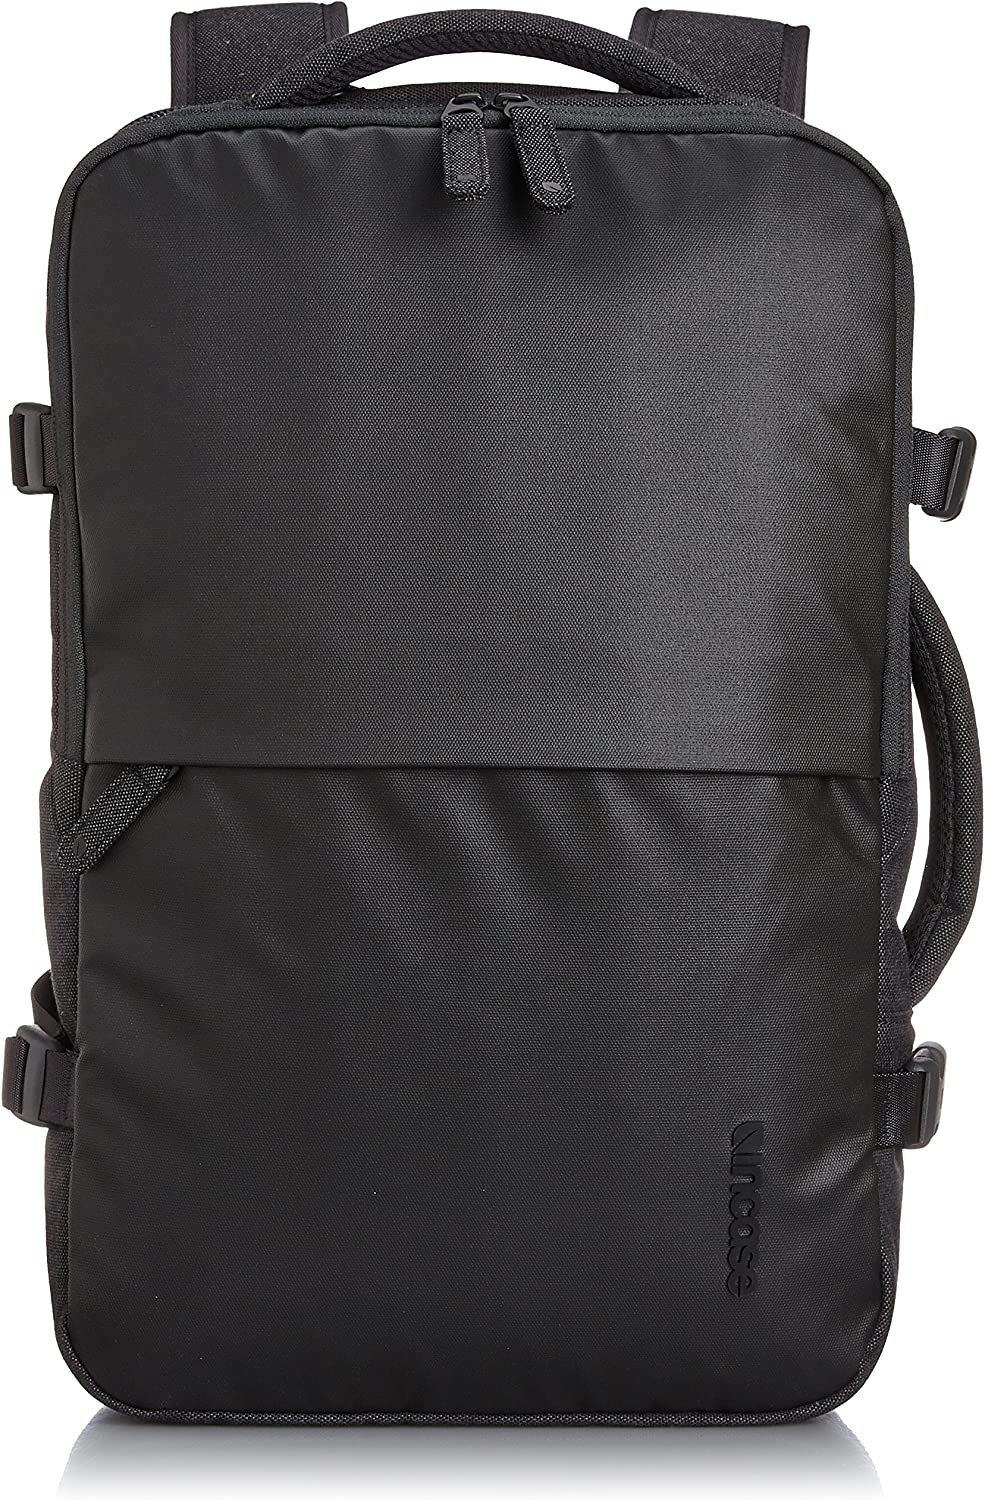 The Incase EO Travel Backpack travel product recommended by Alex Bradshaw on Lifney.